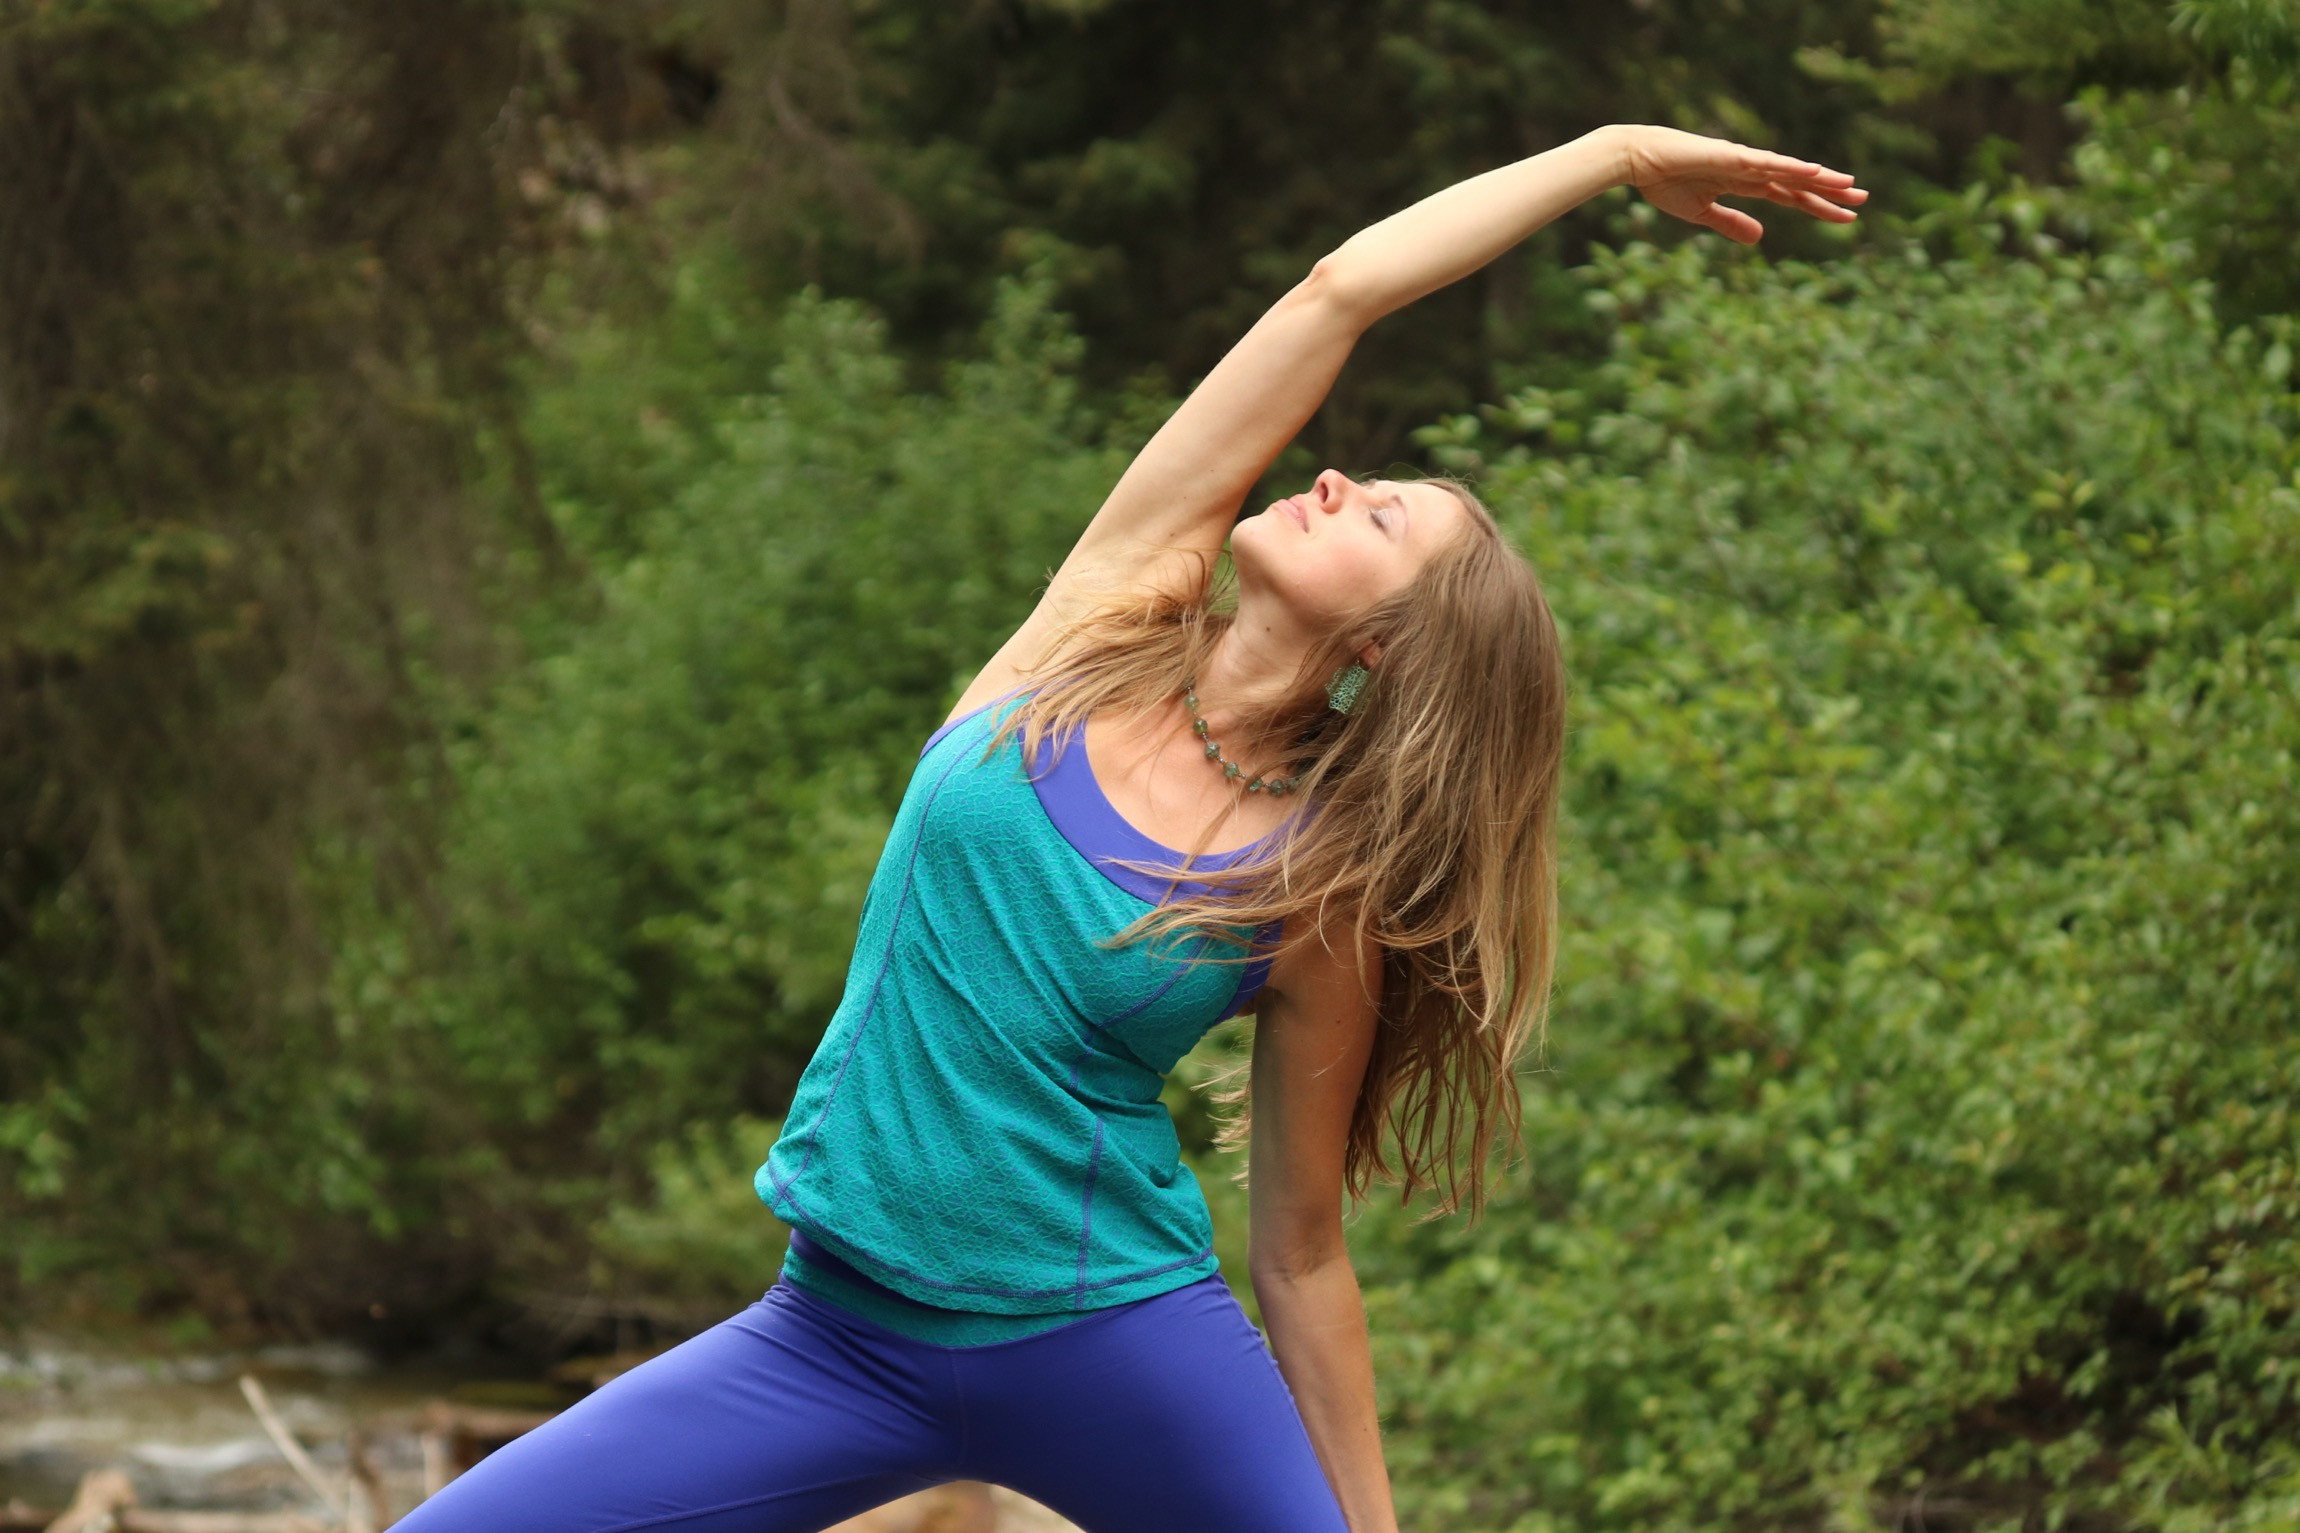 Yoga For Your Body Session - In person